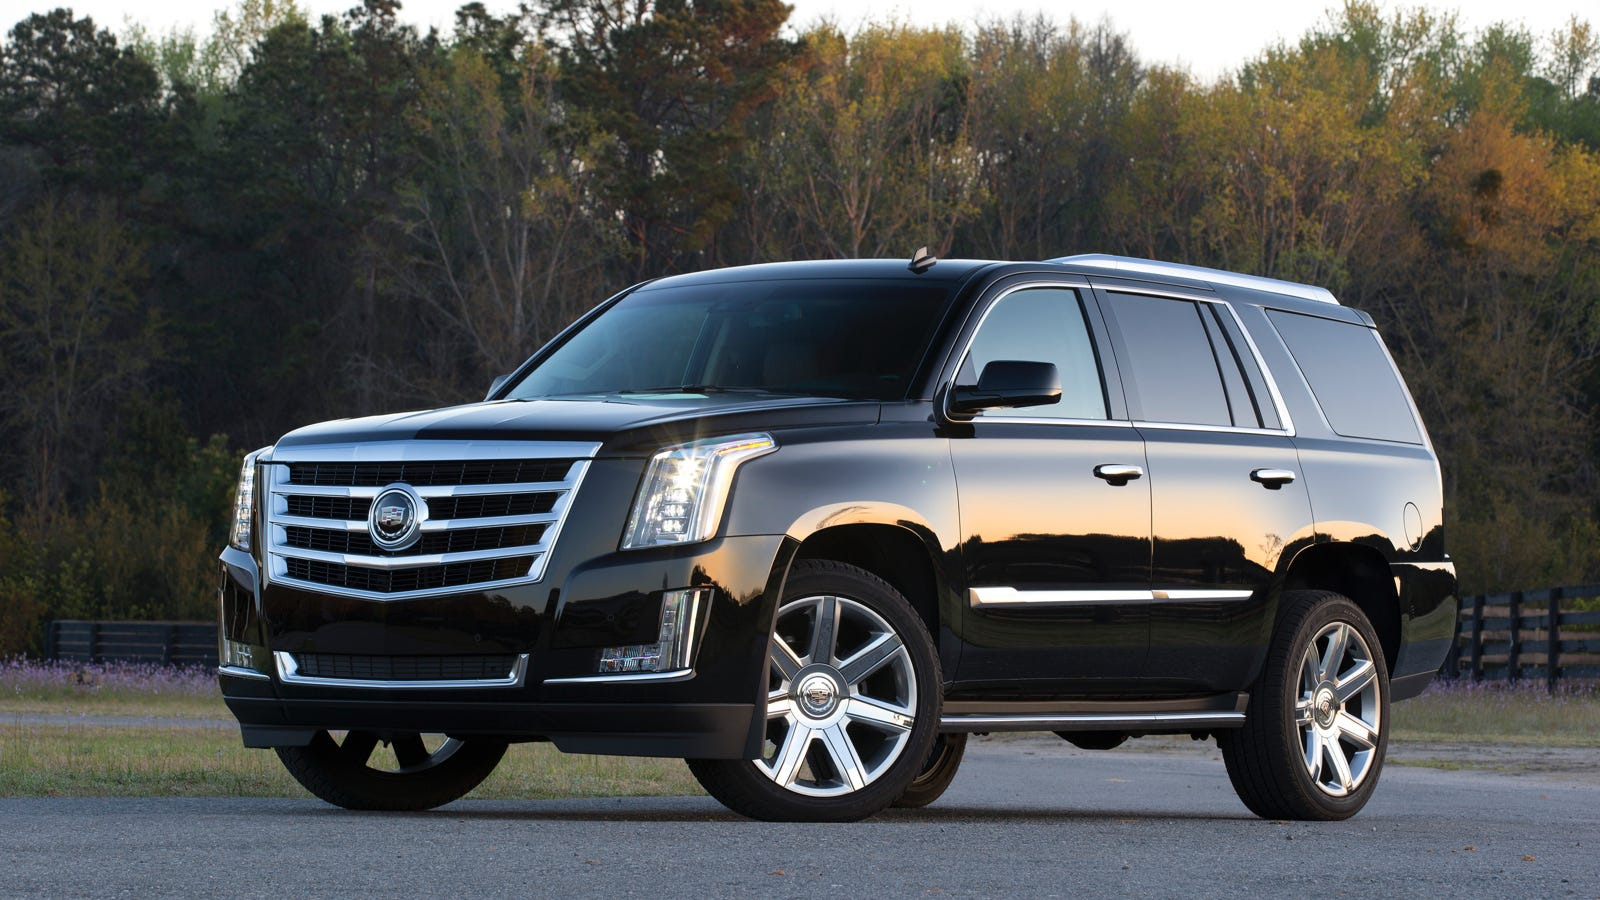 Cadillac cadillac escalade weight : Cadillac Escalade: The Ultimate Buyer's Guide